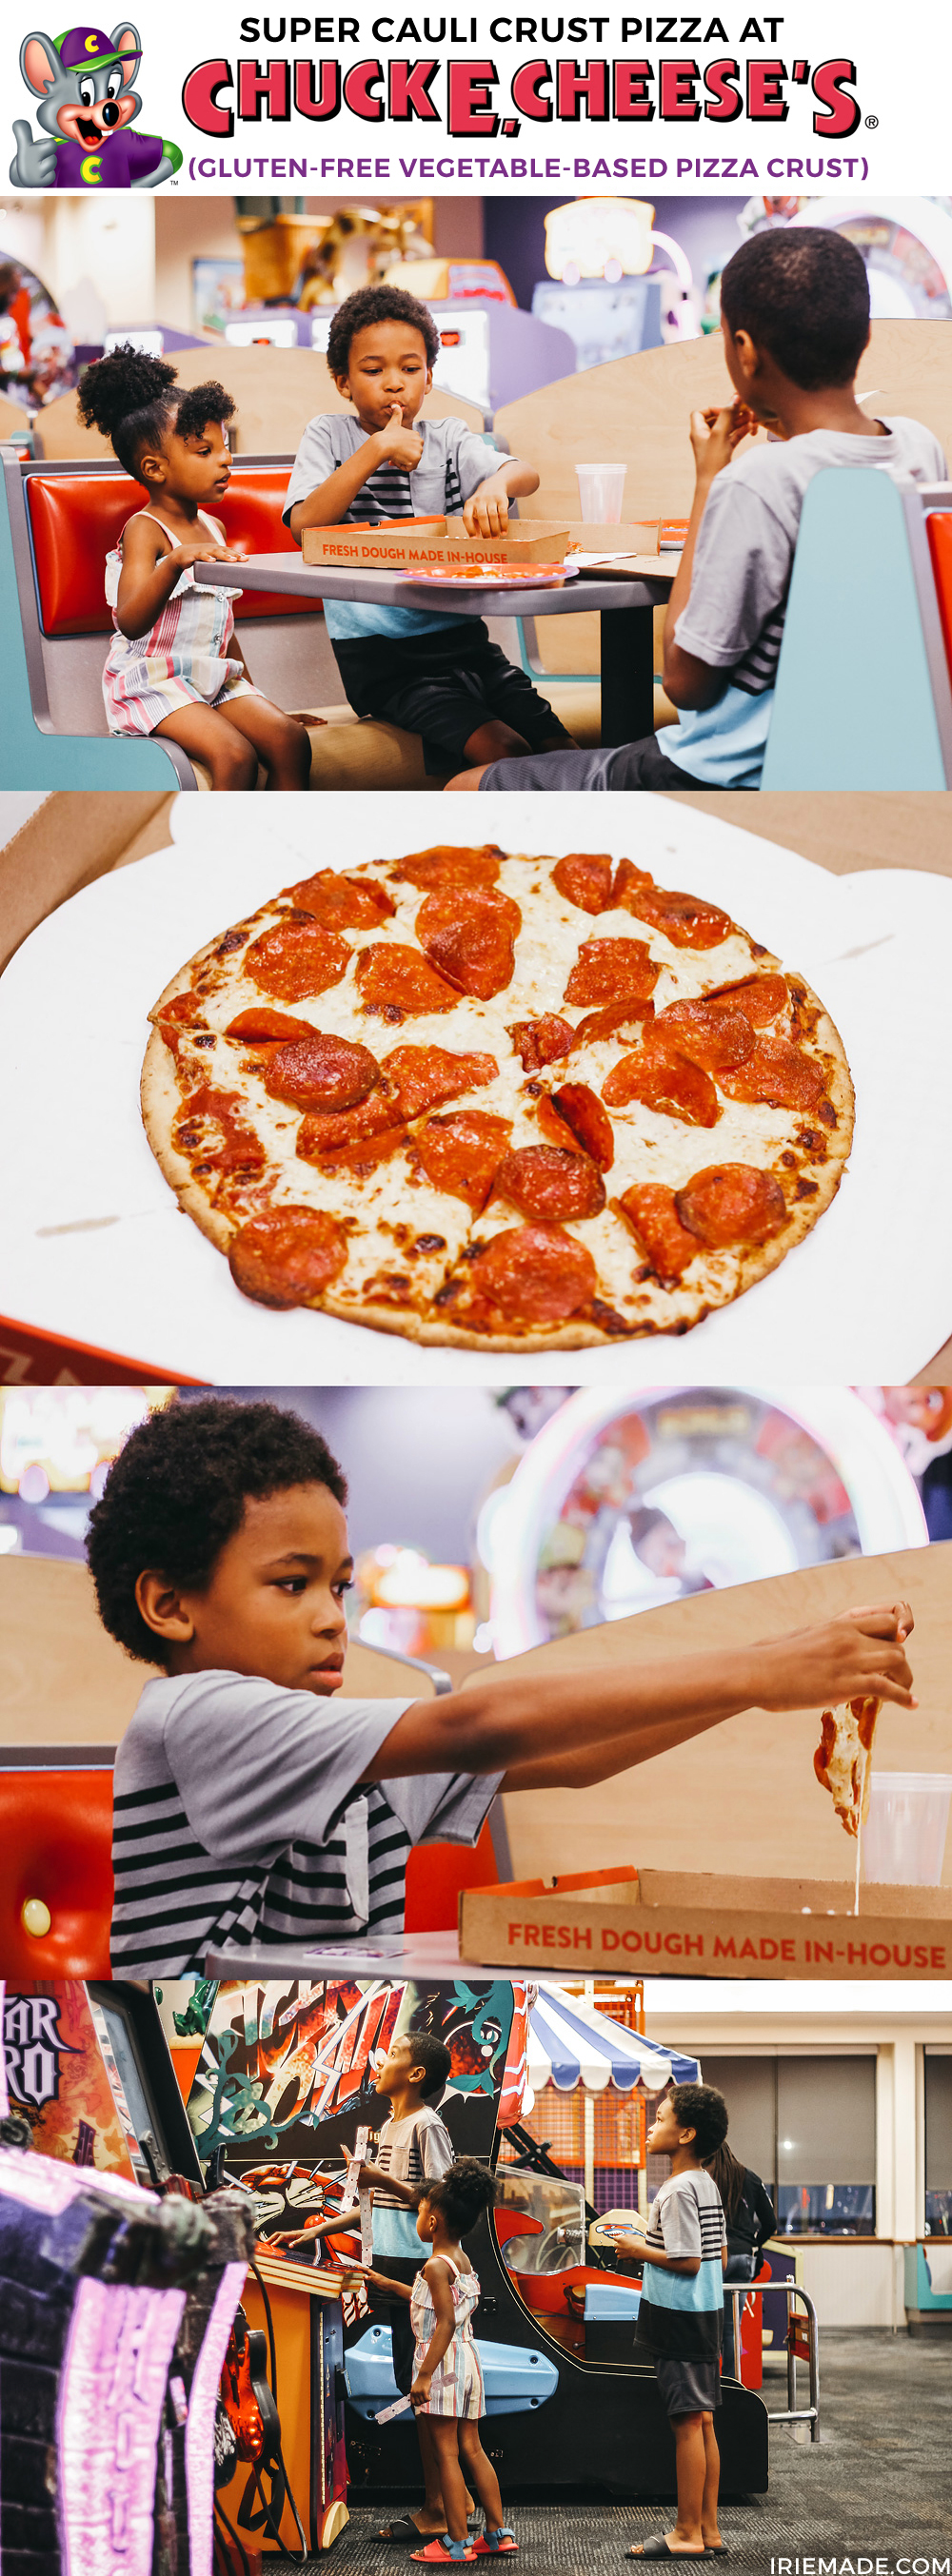 #AD   Did you know that Chuck E. Cheese has a new ...